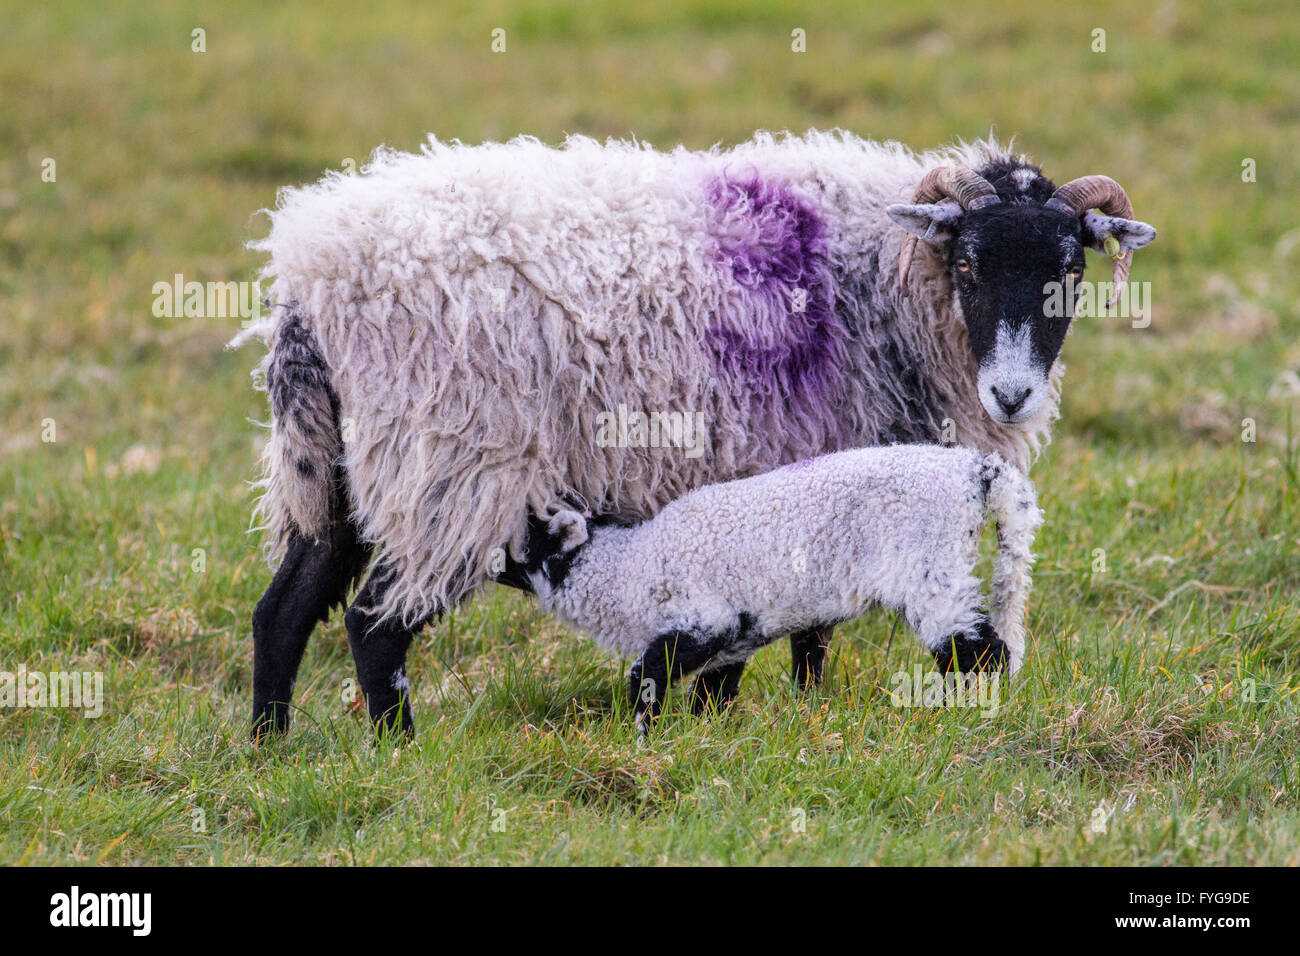 Mother ewe Swaledale sheep with a suckling lamb in a field. - Stock Image